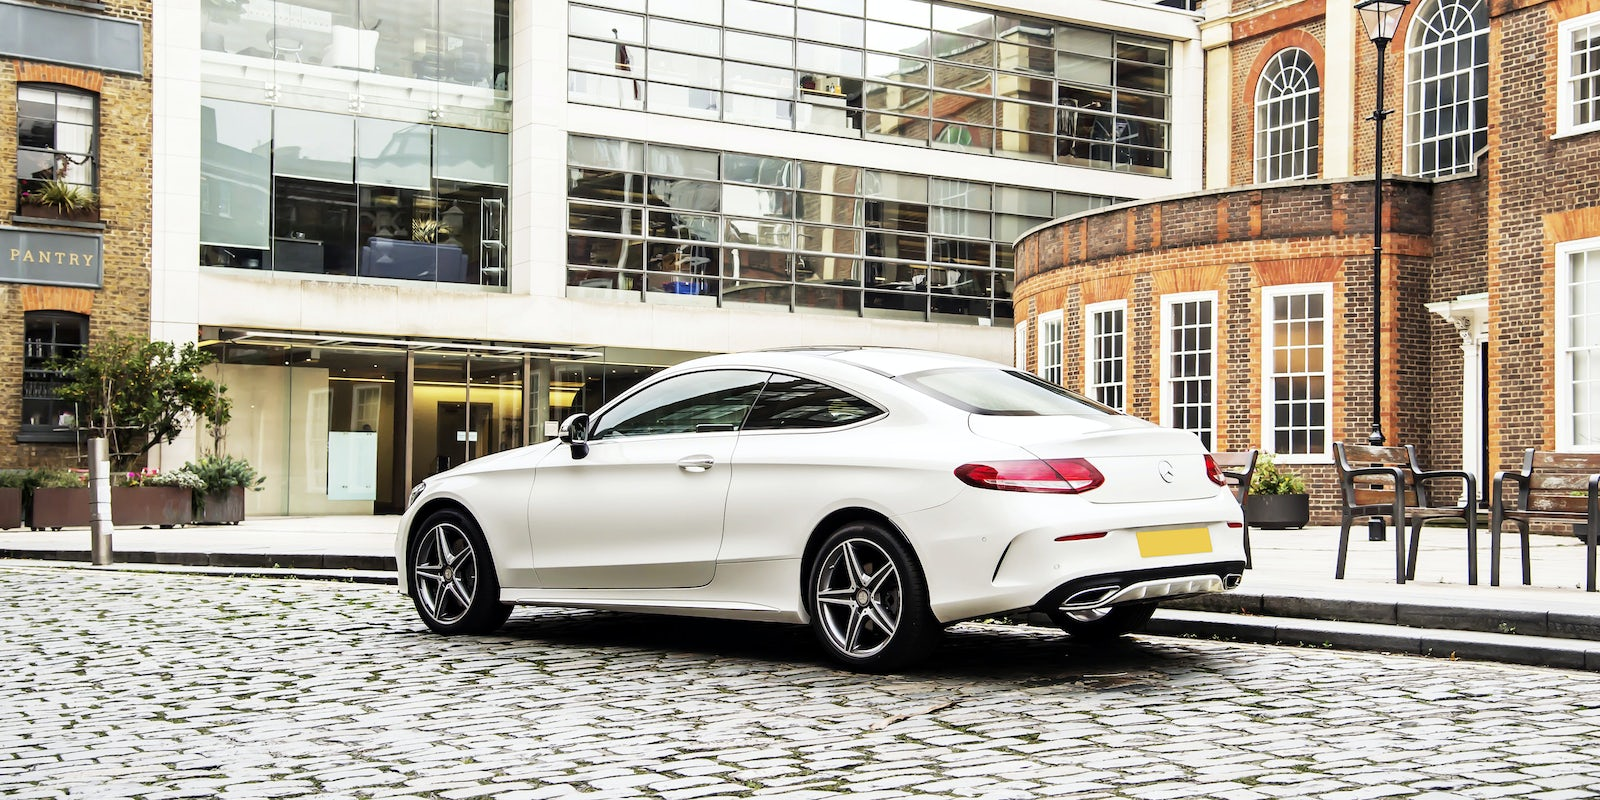 2017 Bmw 6 Series >> Mercedes C-Class Coupe Review | carwow